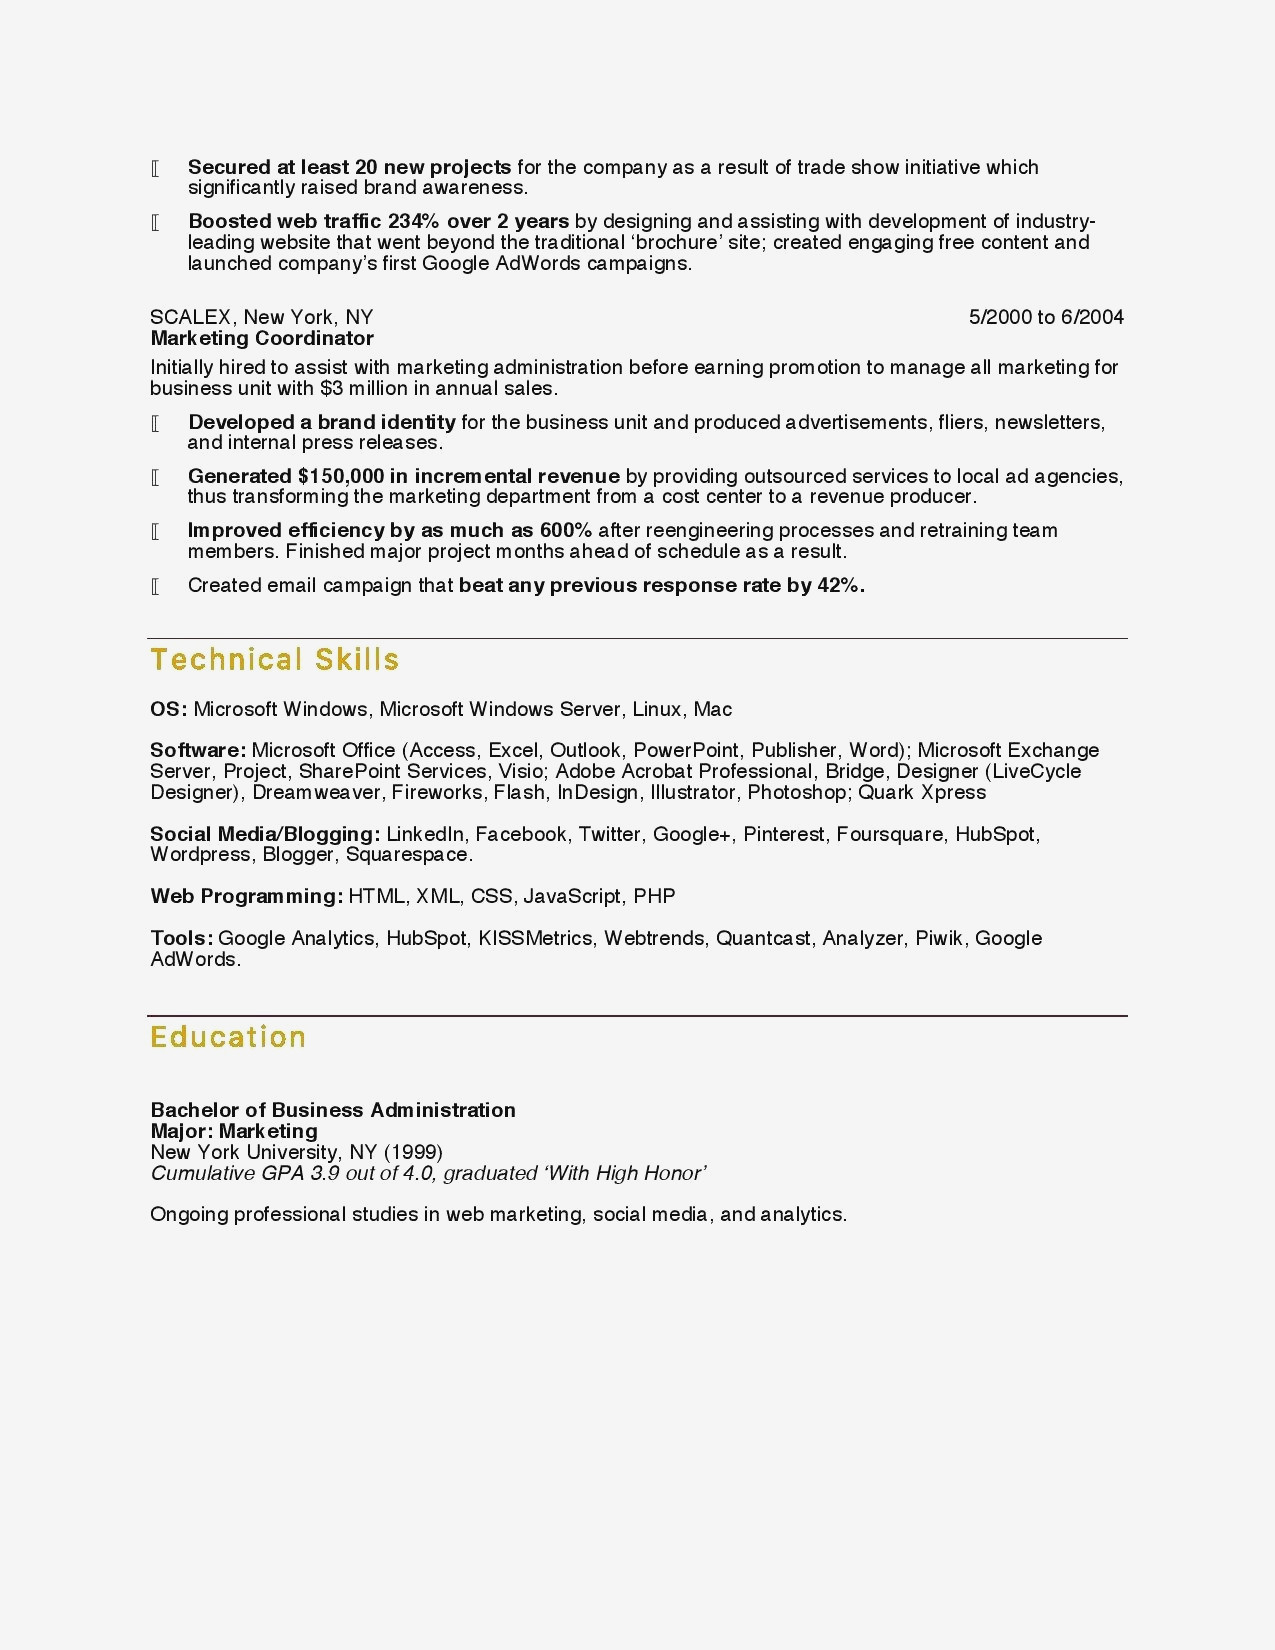 Free Online Resume Template - Free Line Resume Templates Word Line Resume Builder Free Luxury